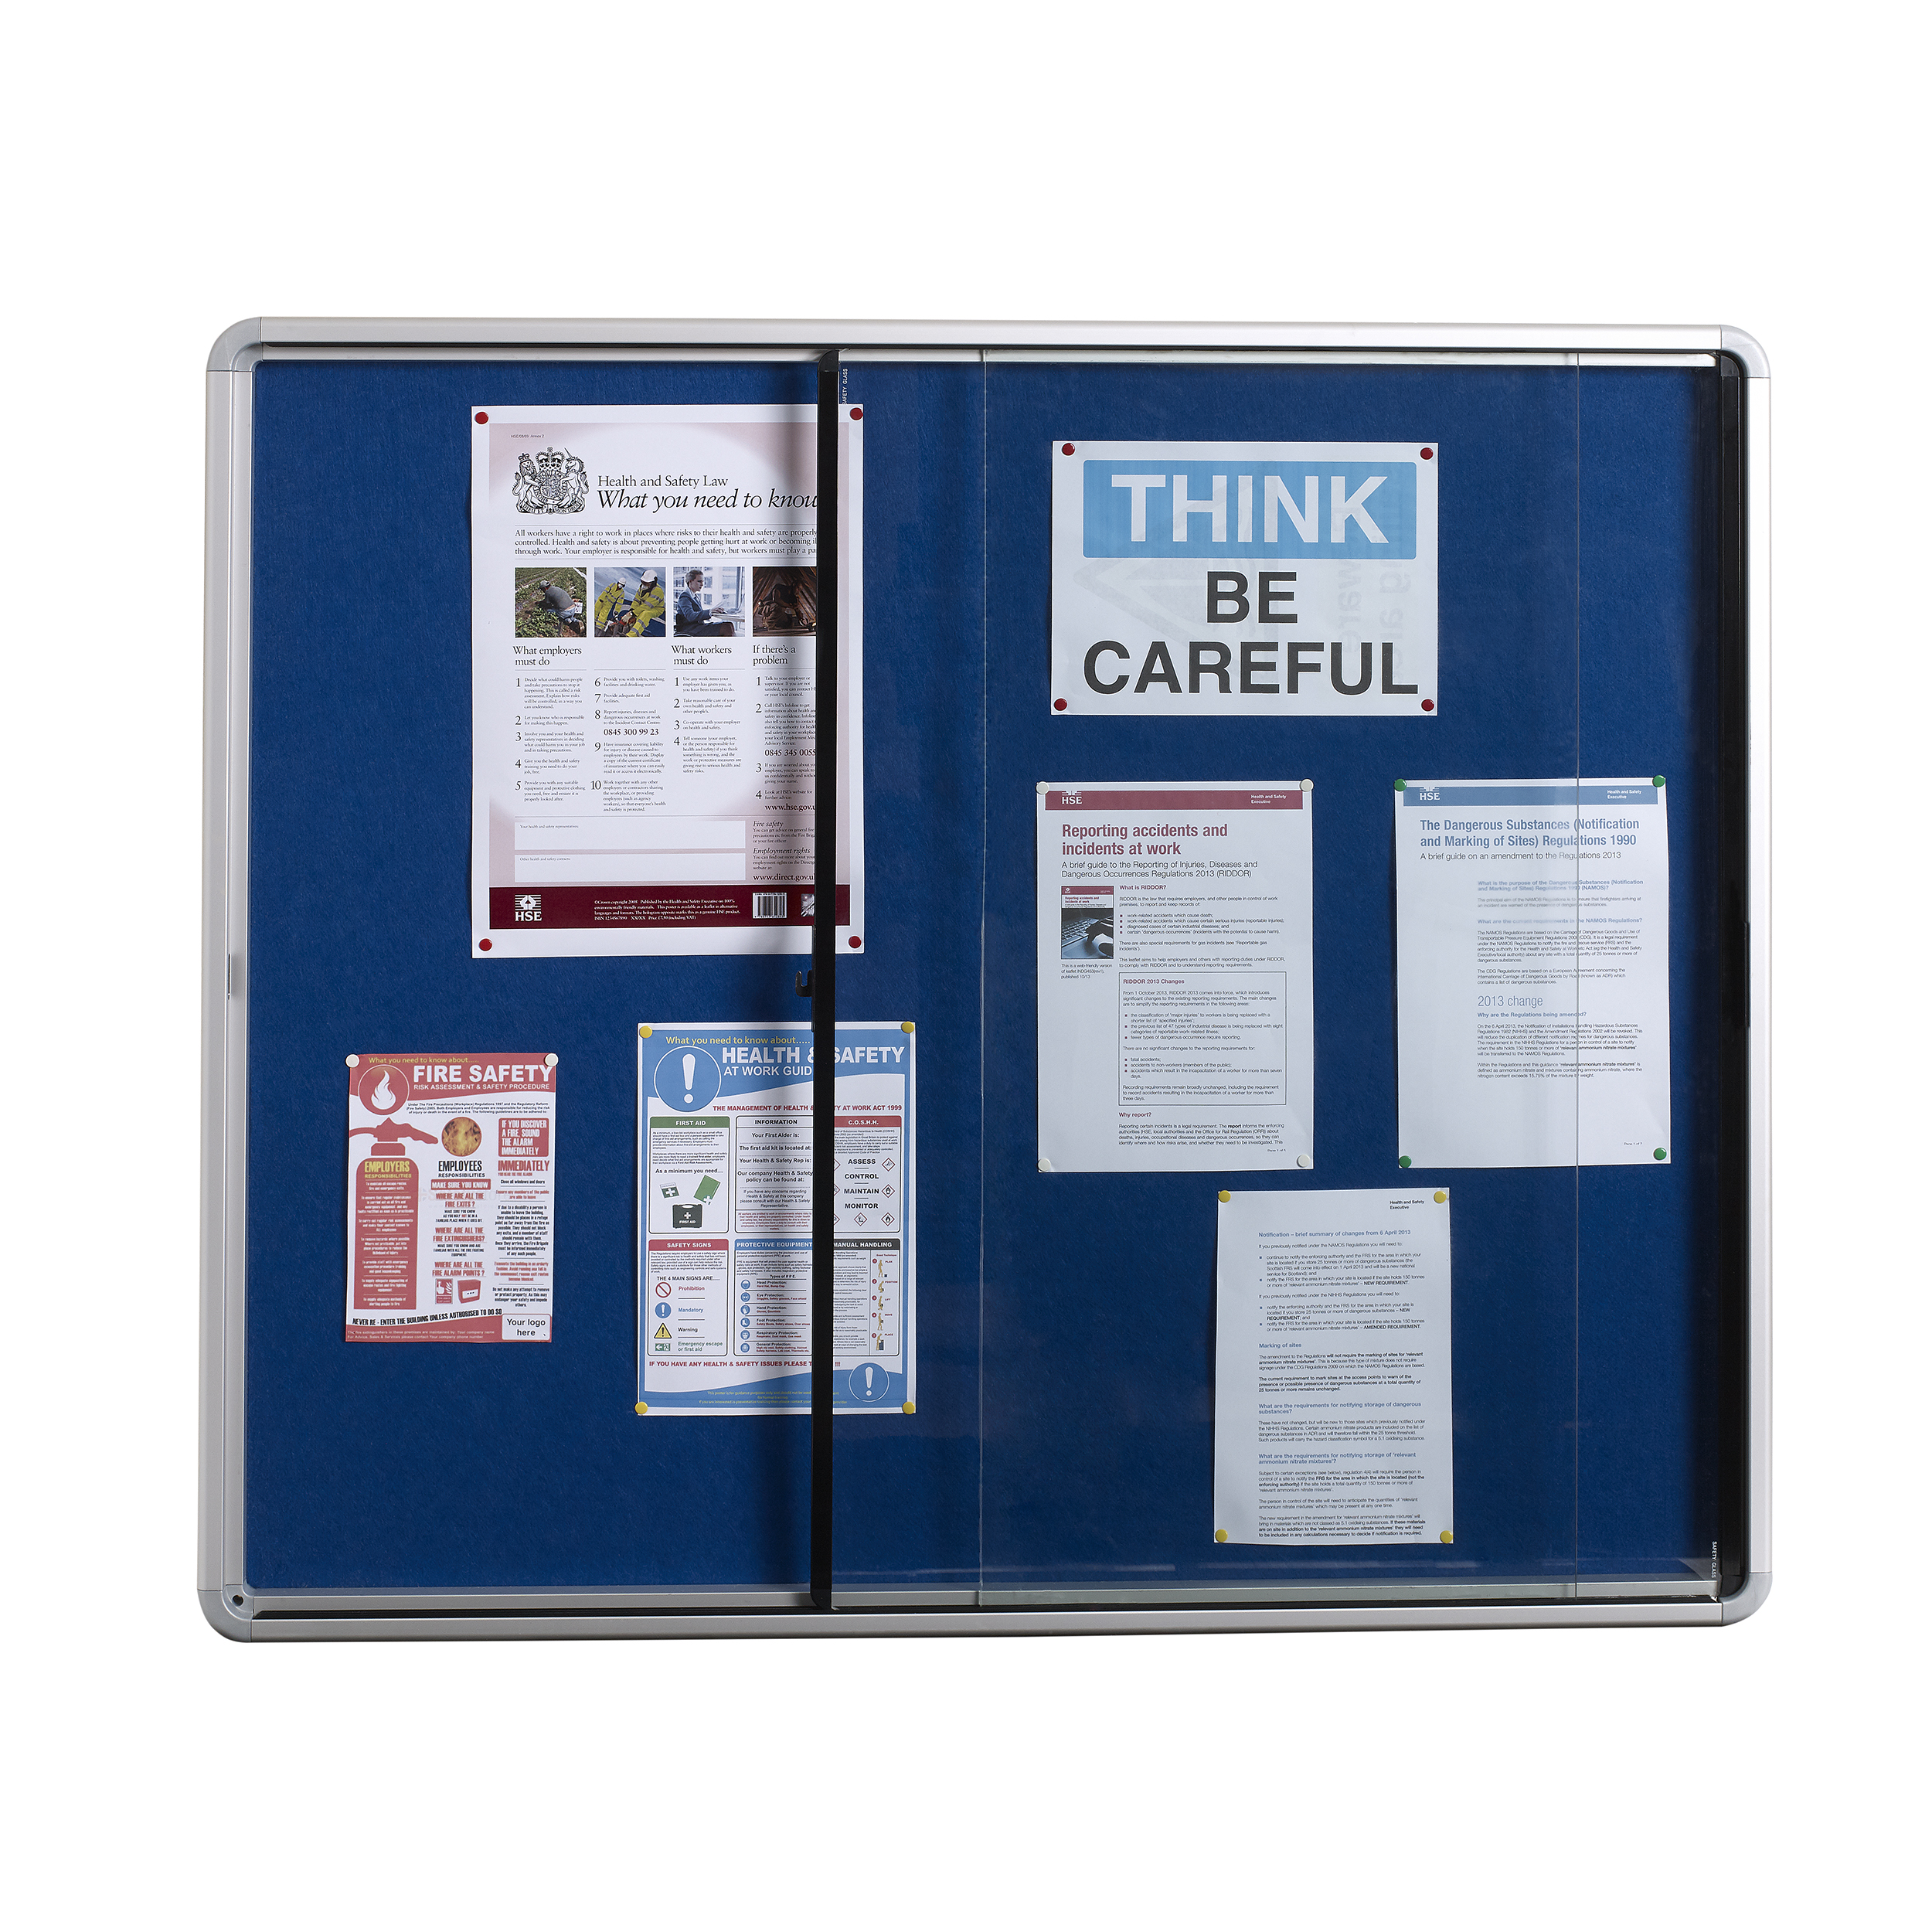 Image for 5 Star Glazed Noticeboard with sliding Door Locking Alumin Frame Blue Felt 900x1200mm